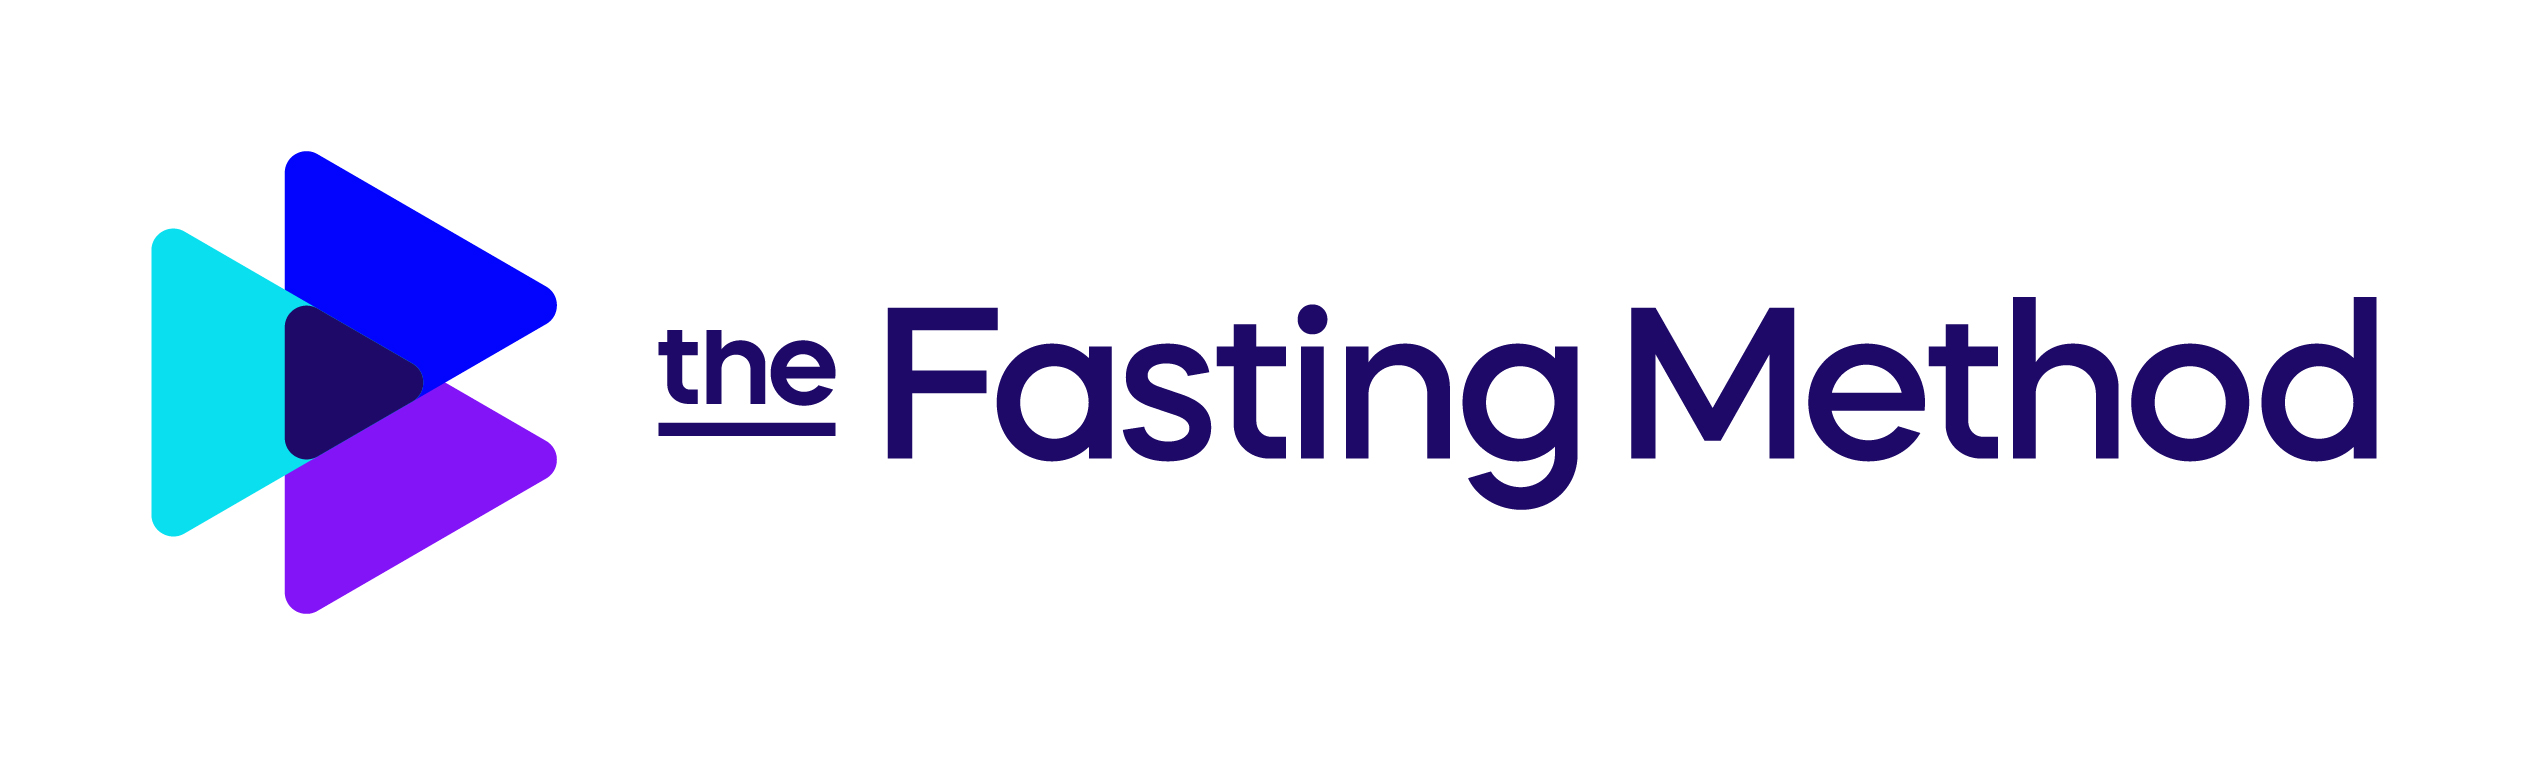 The Fasting Method Help Center home page